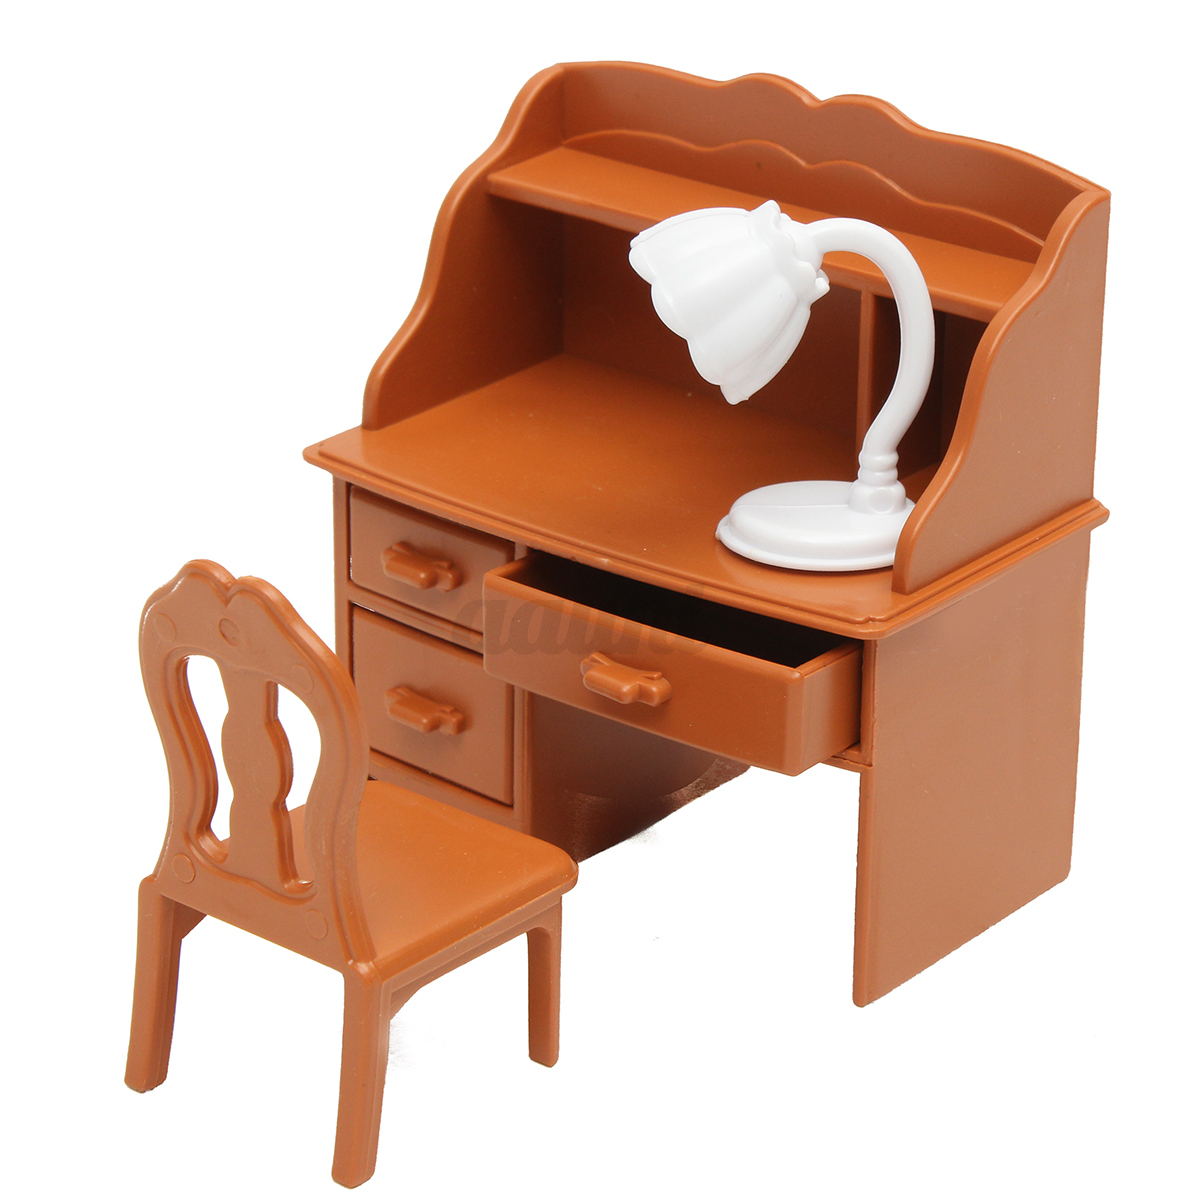 Vintage Plastic Miniature Dollhouse Furniture Set Bedroom Decor Kids Toy Gifts Auctions Buy